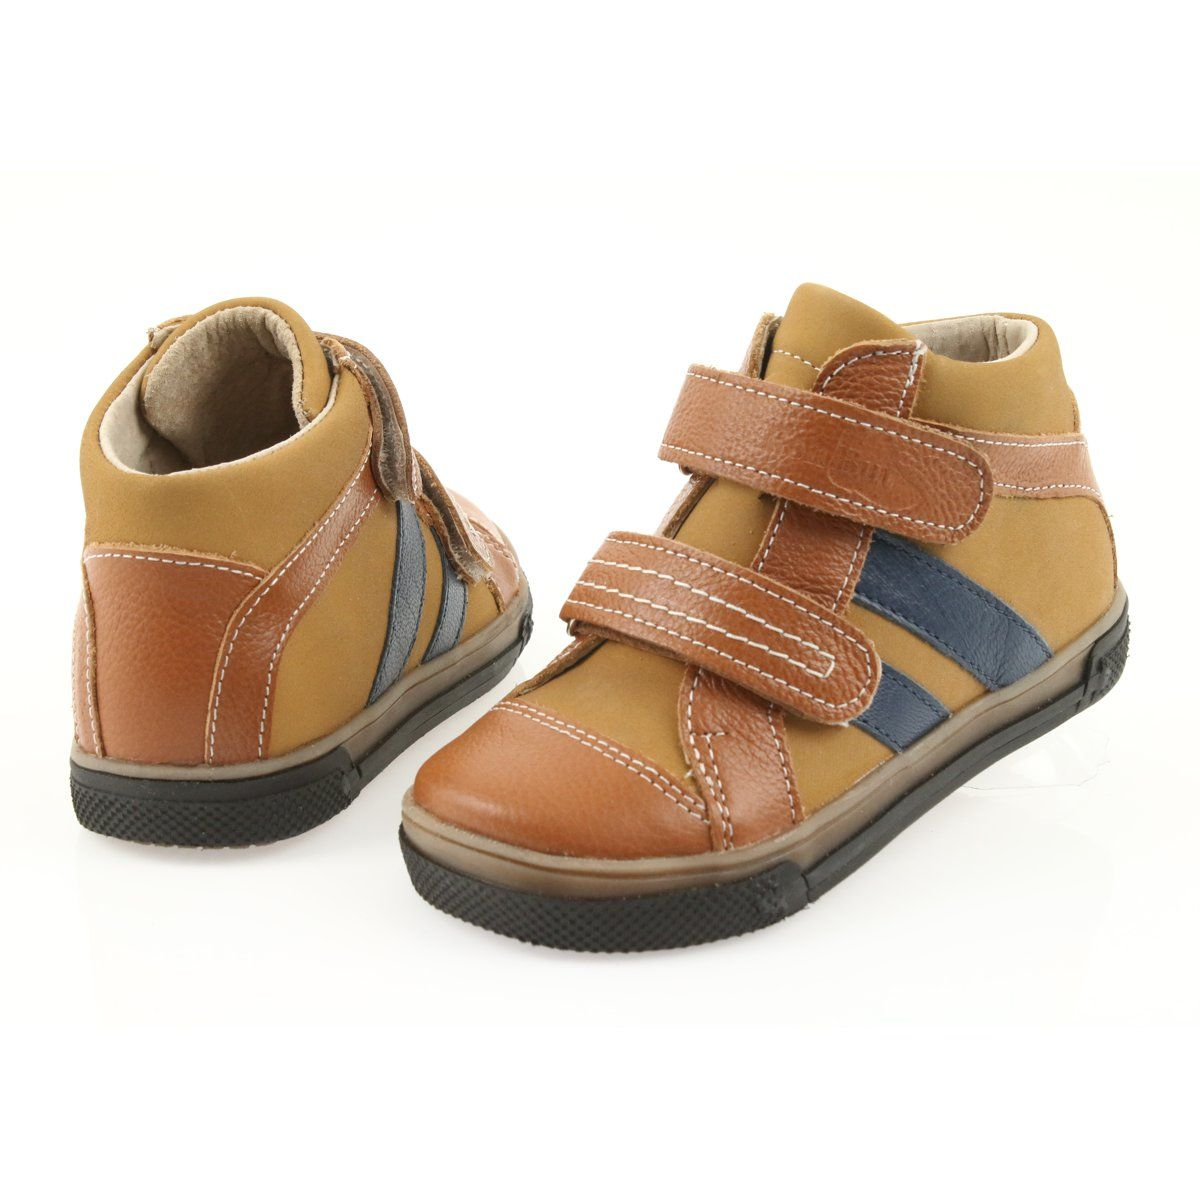 Pin On Children S Shoes And Booties